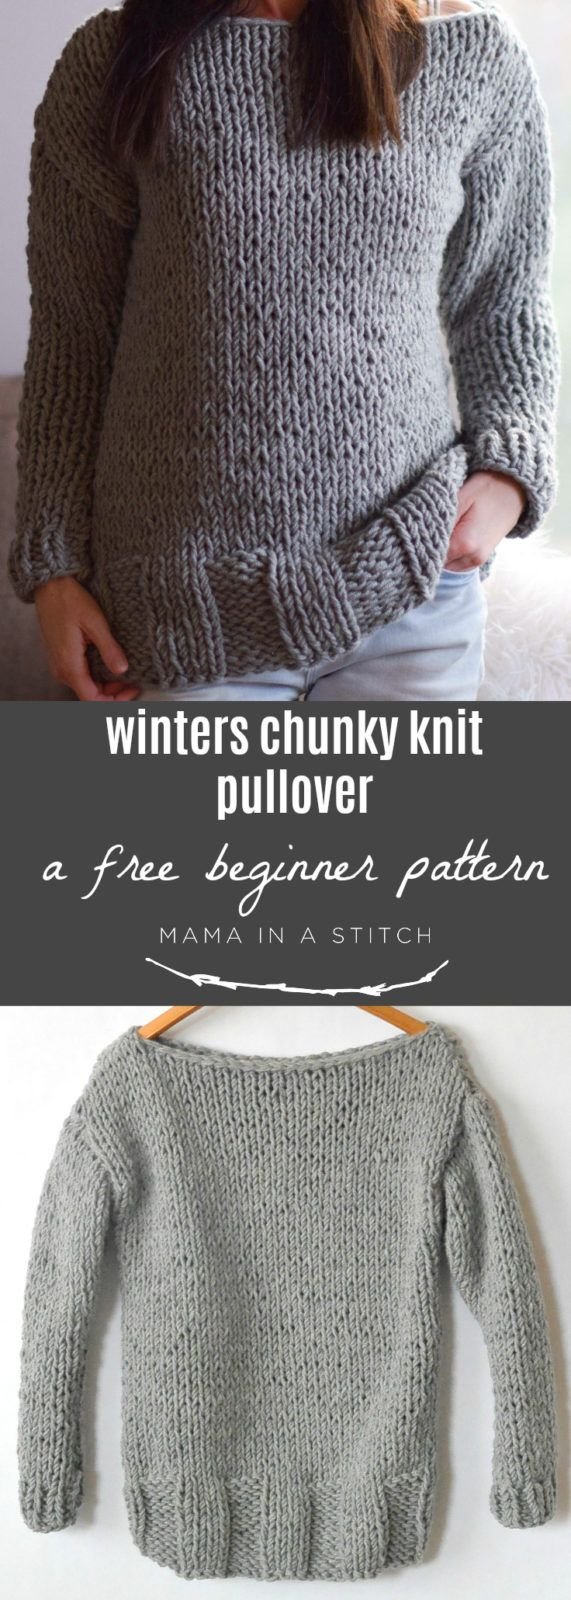 Super easy, free knit pullover pattern for cold winter days from ...